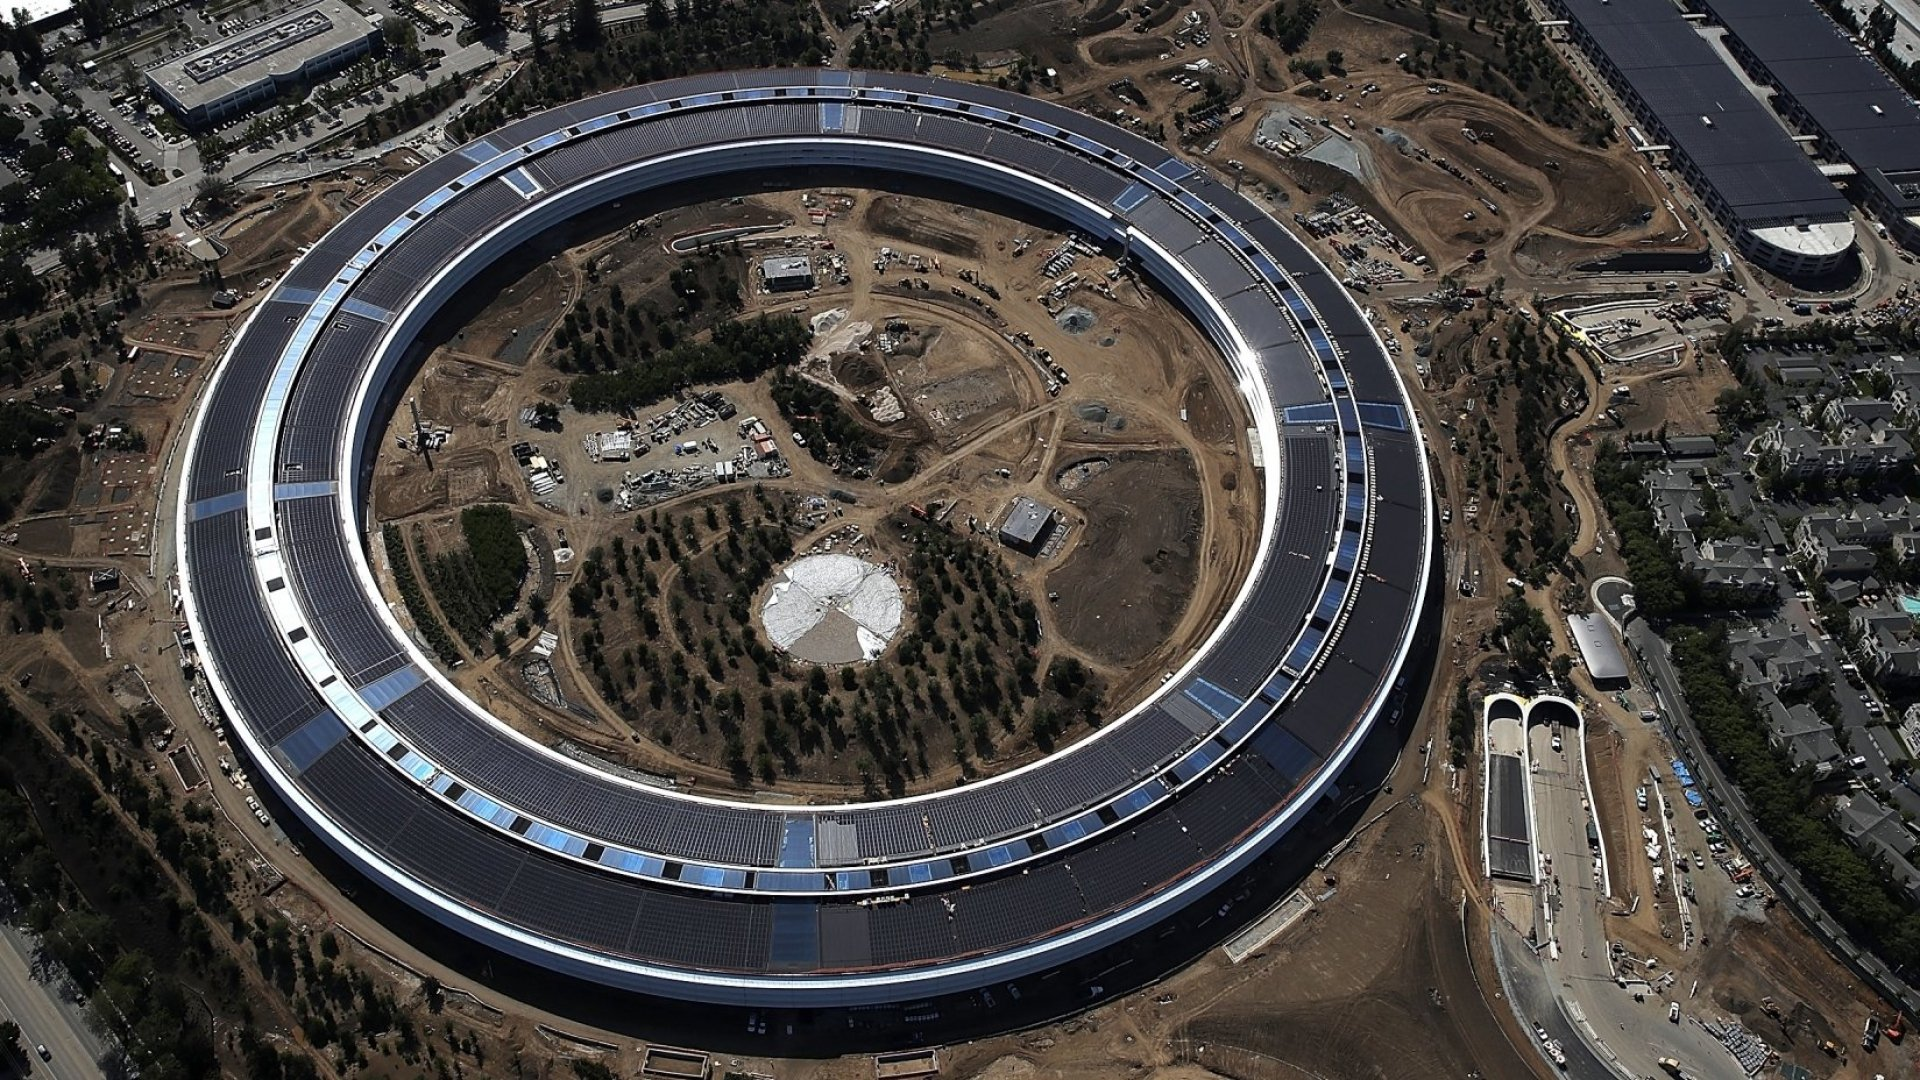 Meet Apple's New Steve Jobs Theater and $5 Billion 'Spaceship'